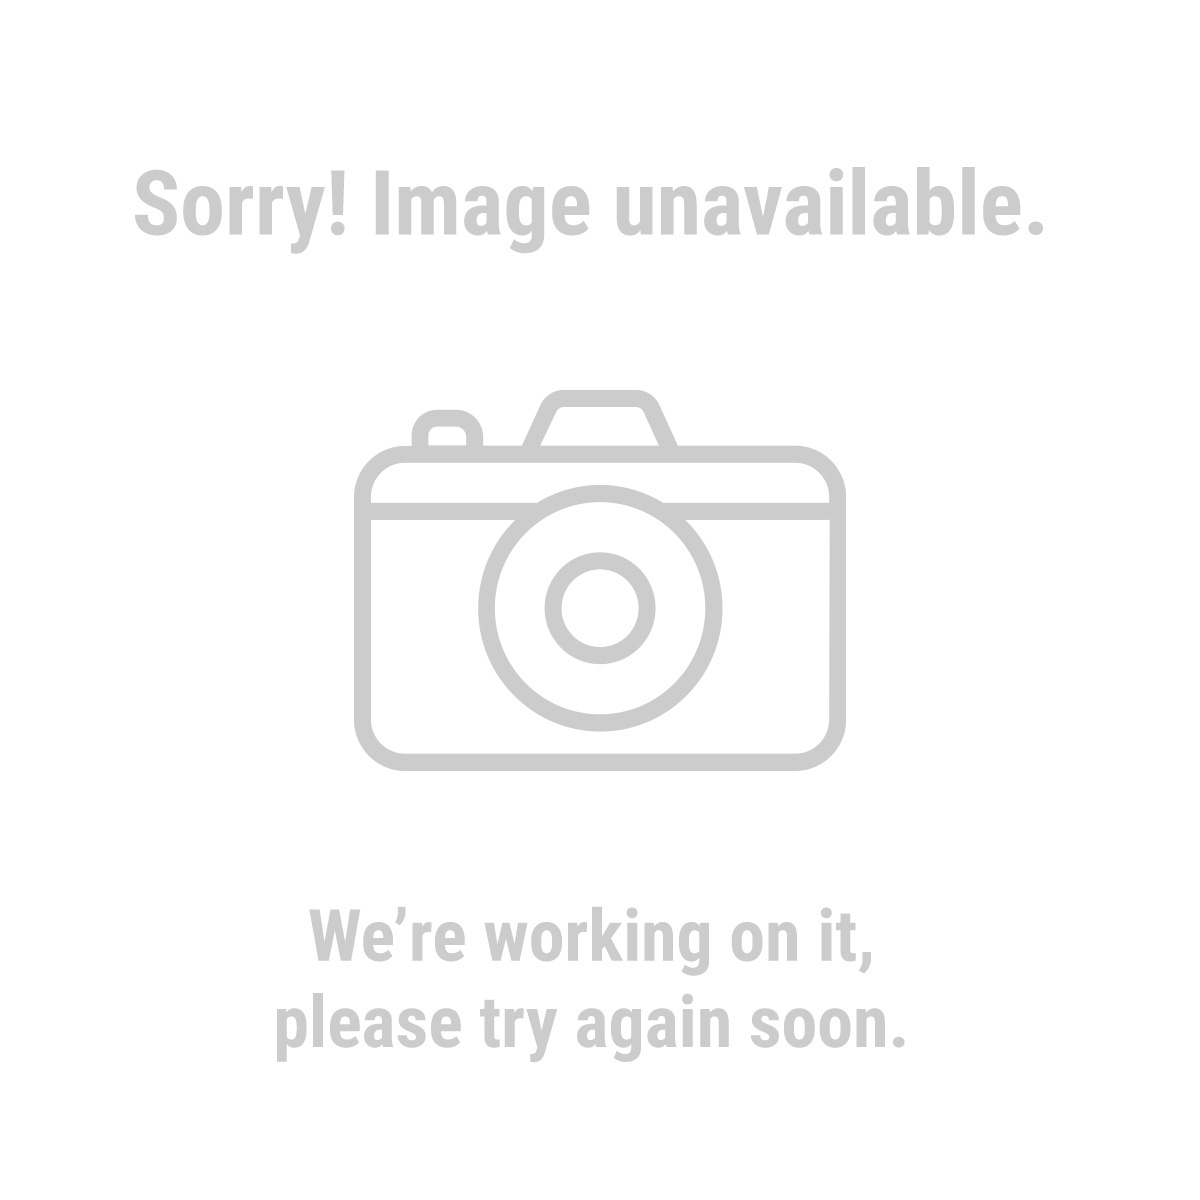 "Pittsburgh 45916 5"" Deep Throat C-Clamp"